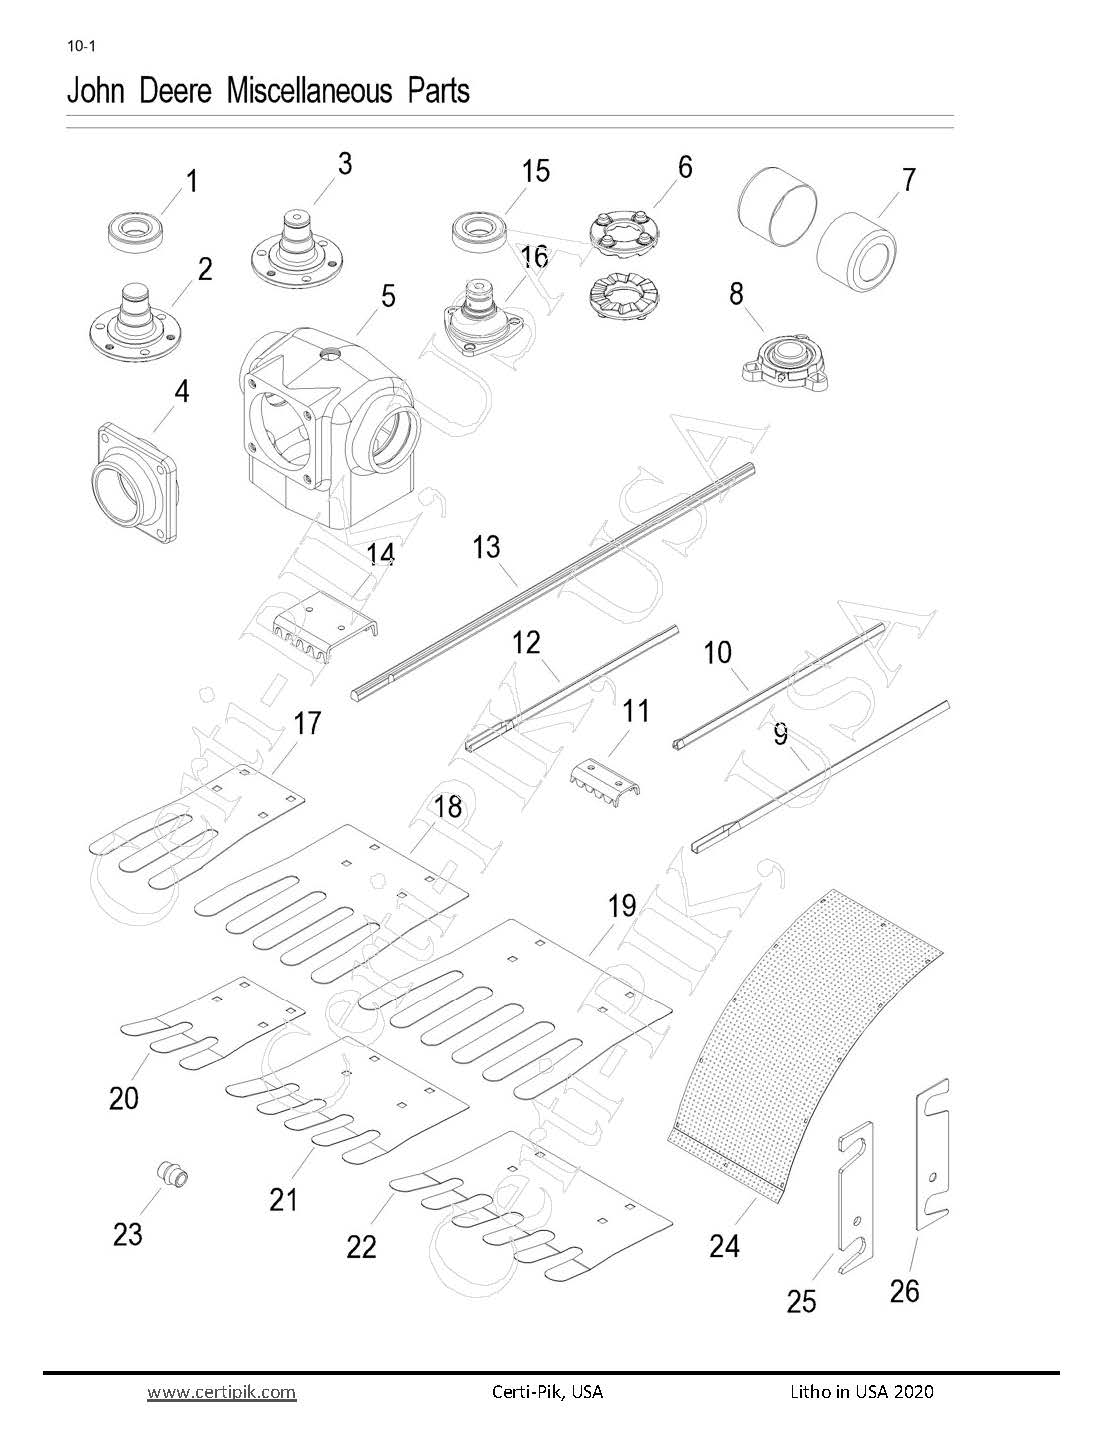 2p1 10 1 Jd Misc Parts Page 1